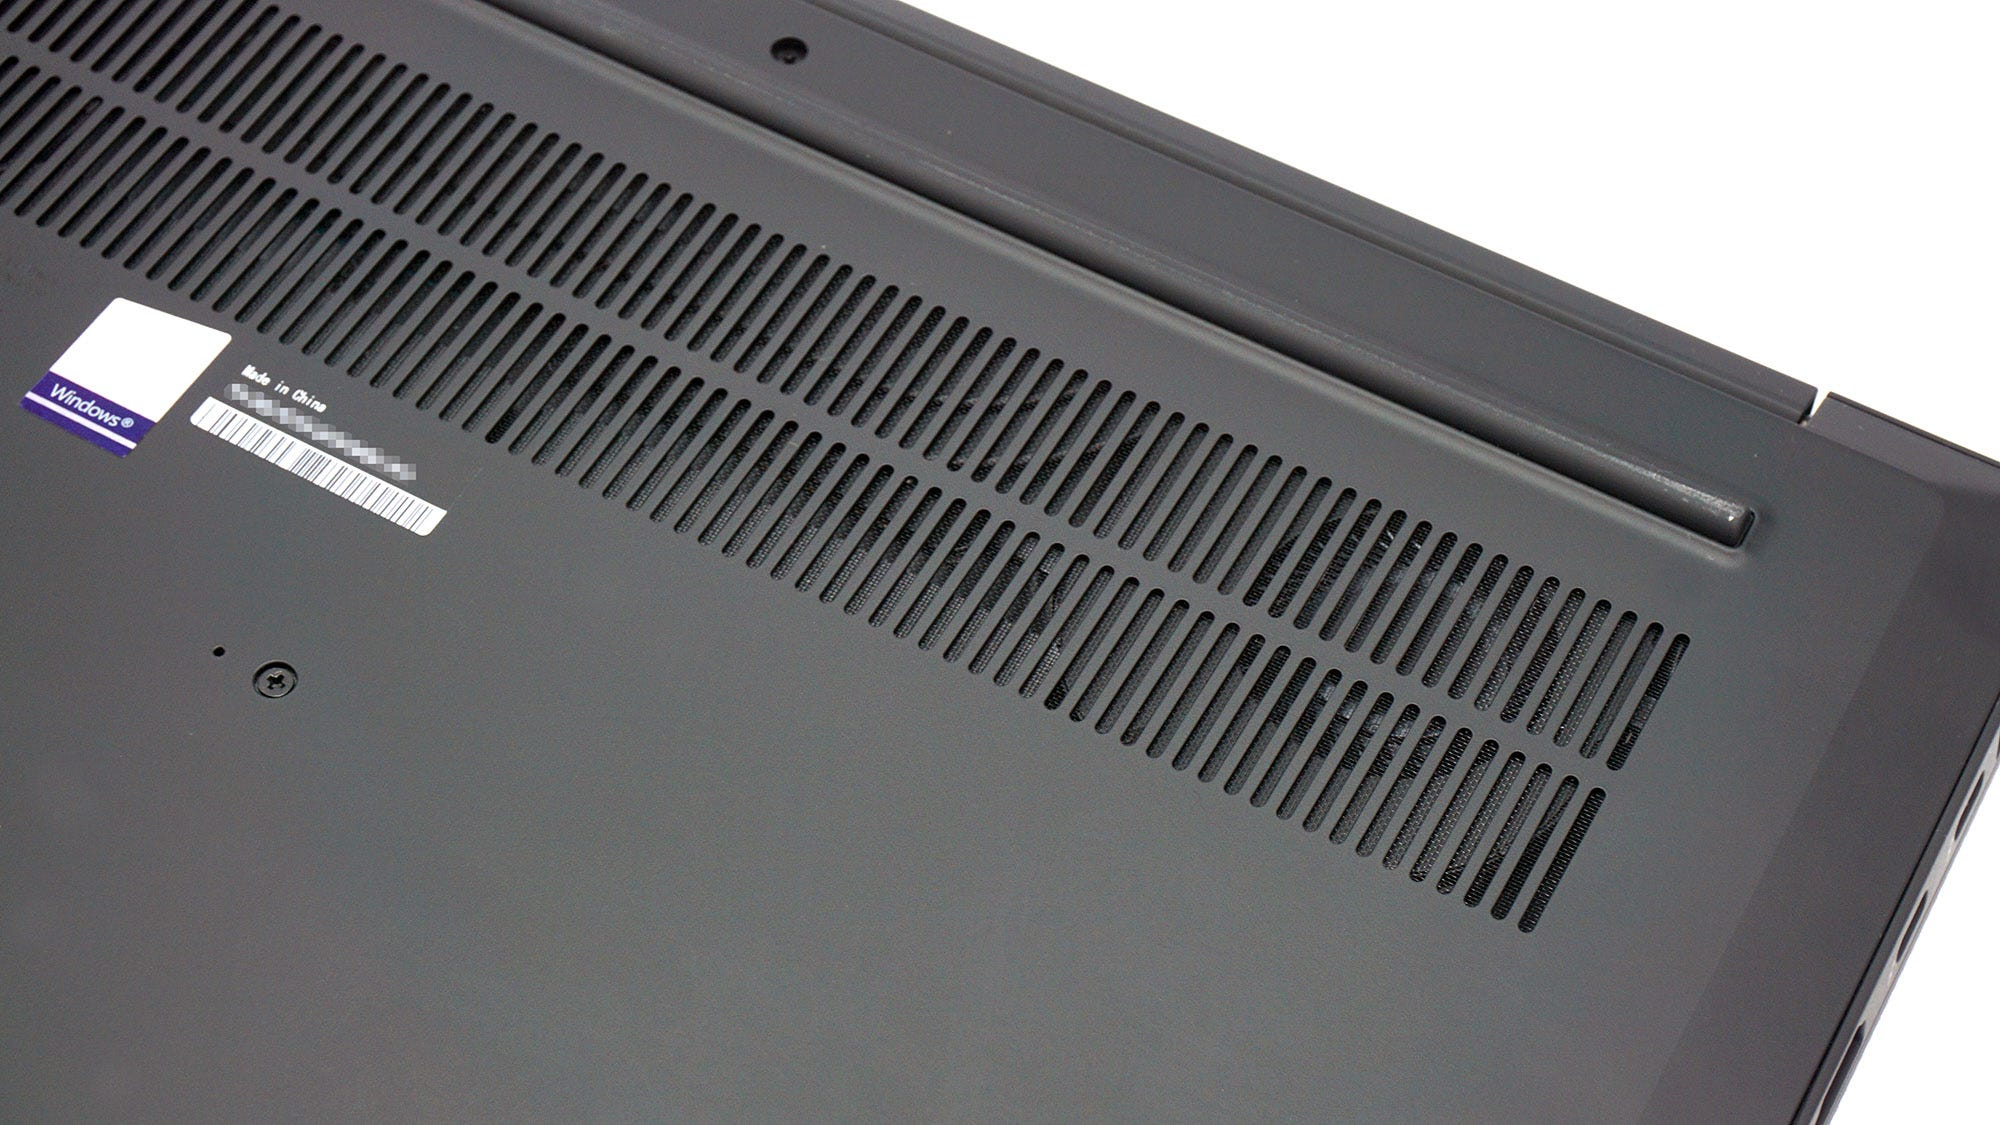 Bottom vents on the X1 Extreme.